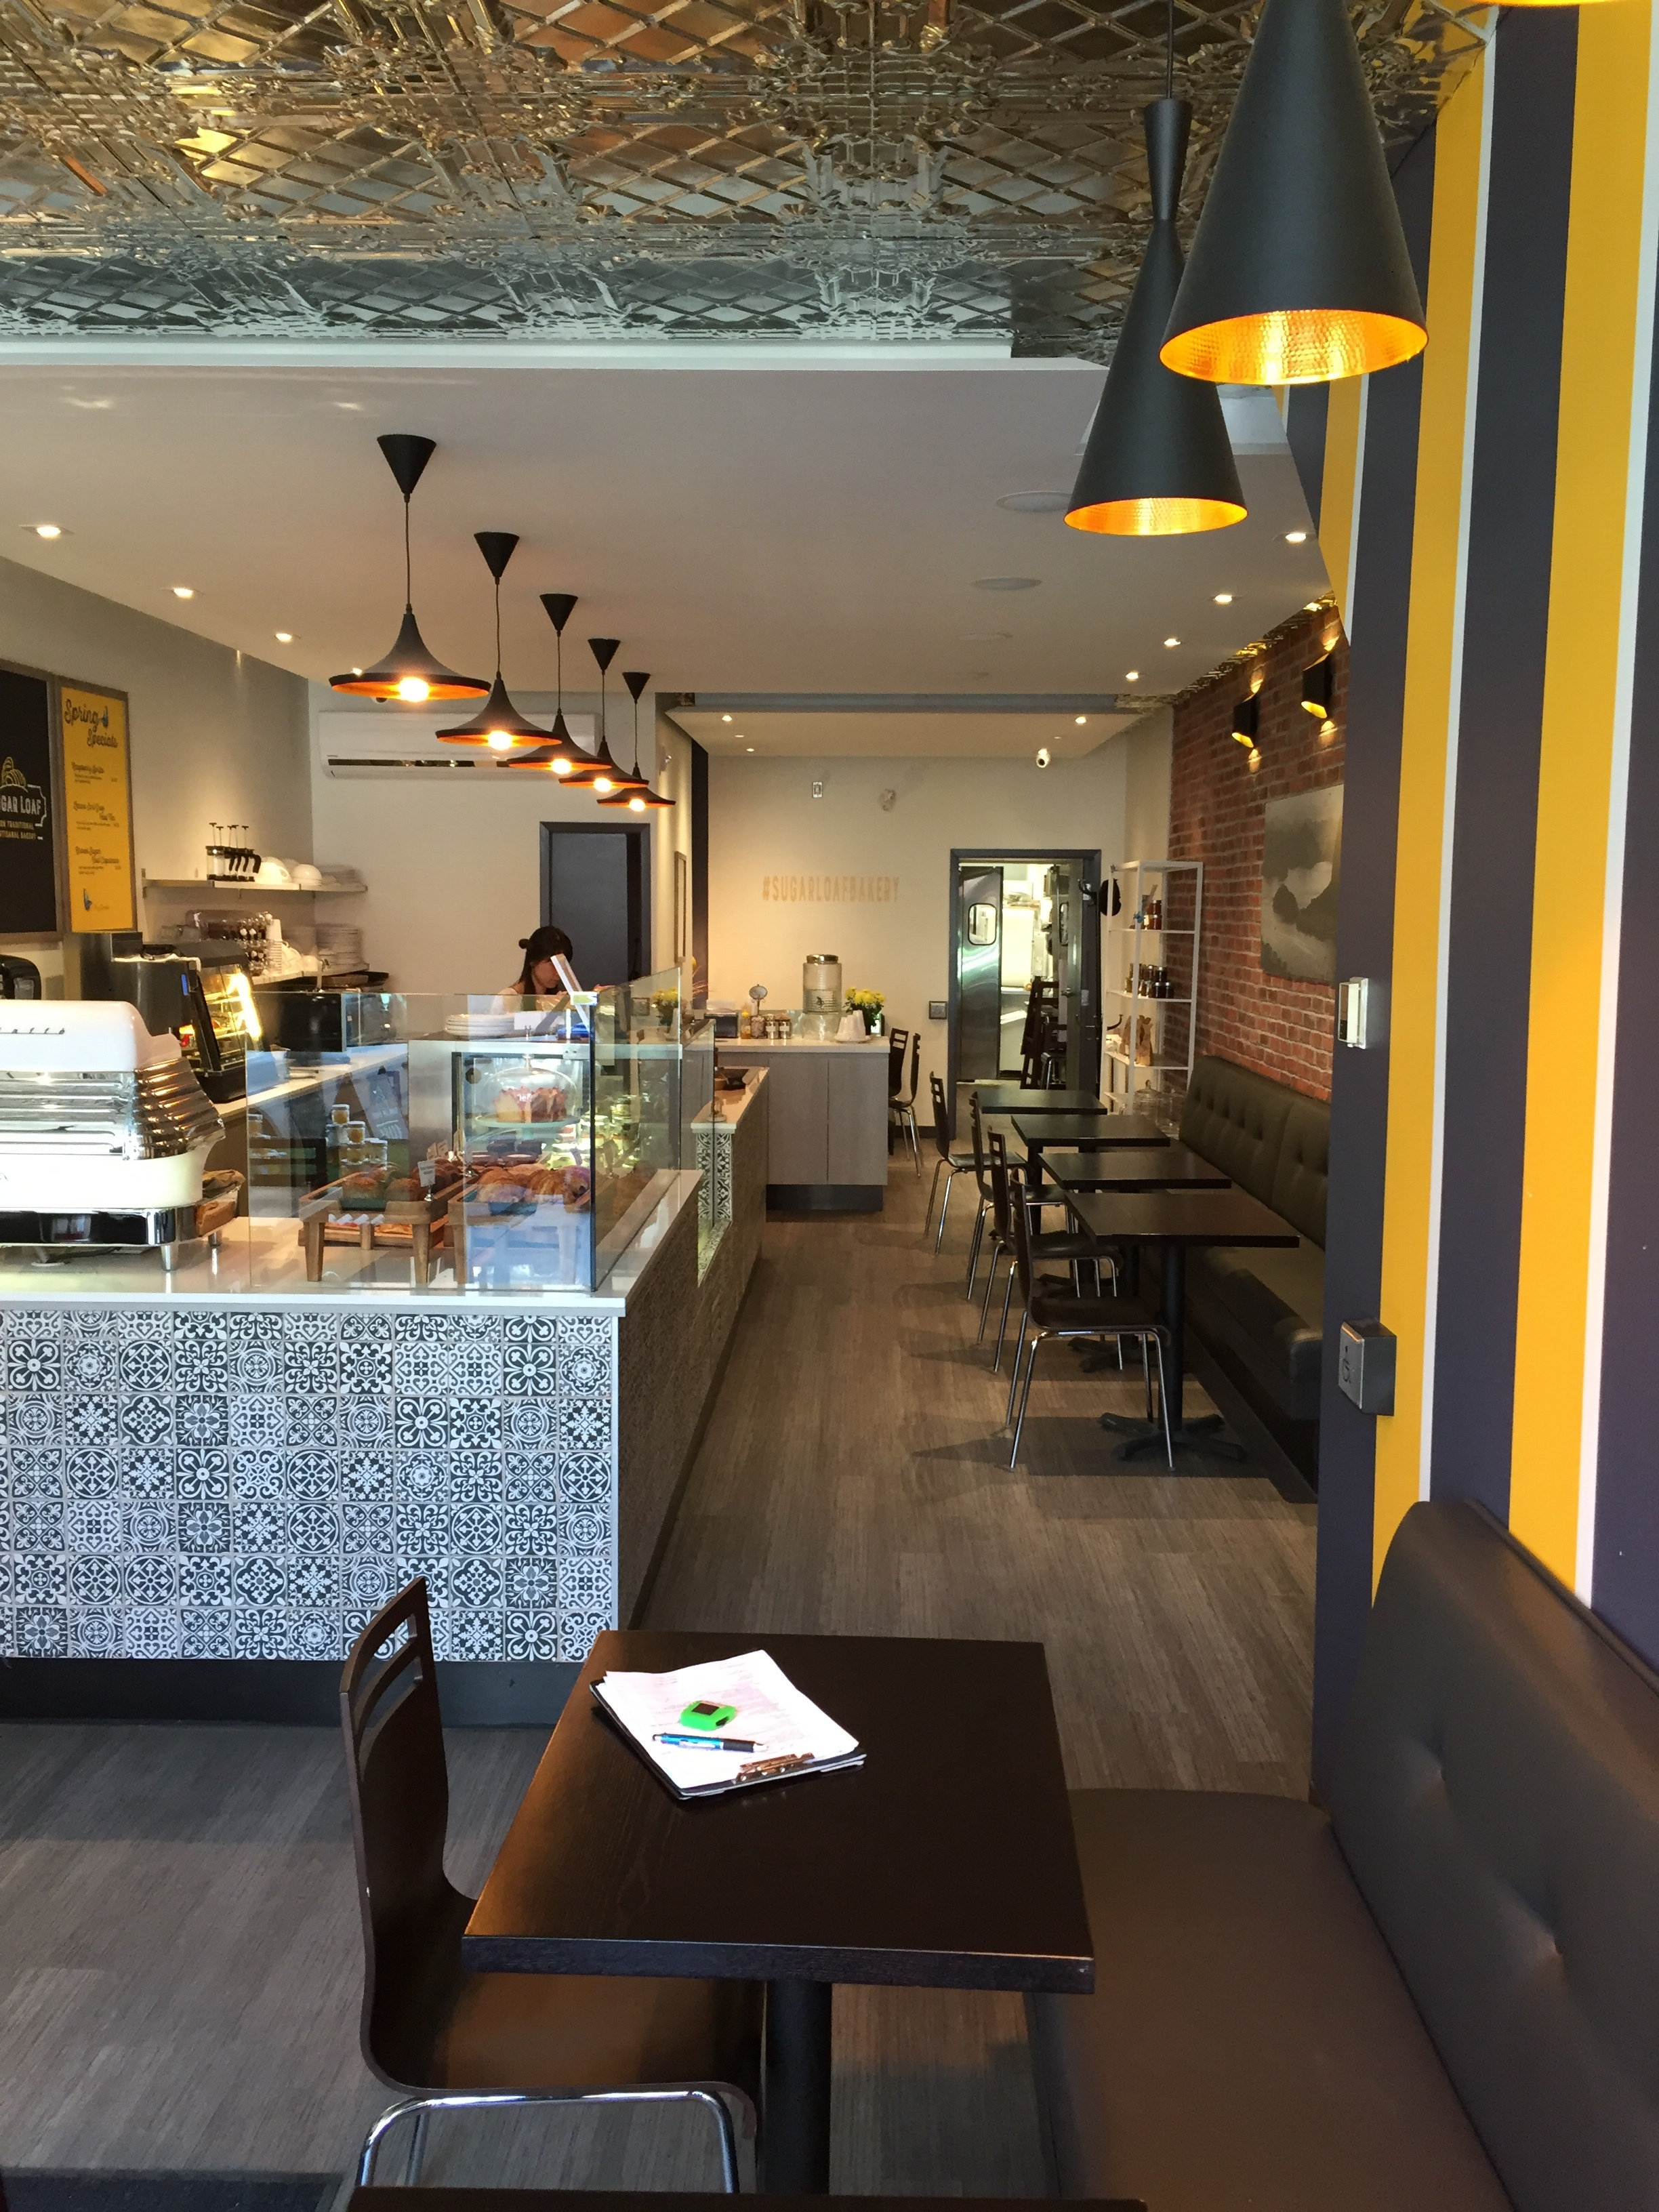 Picture of the accessible interior of bakery